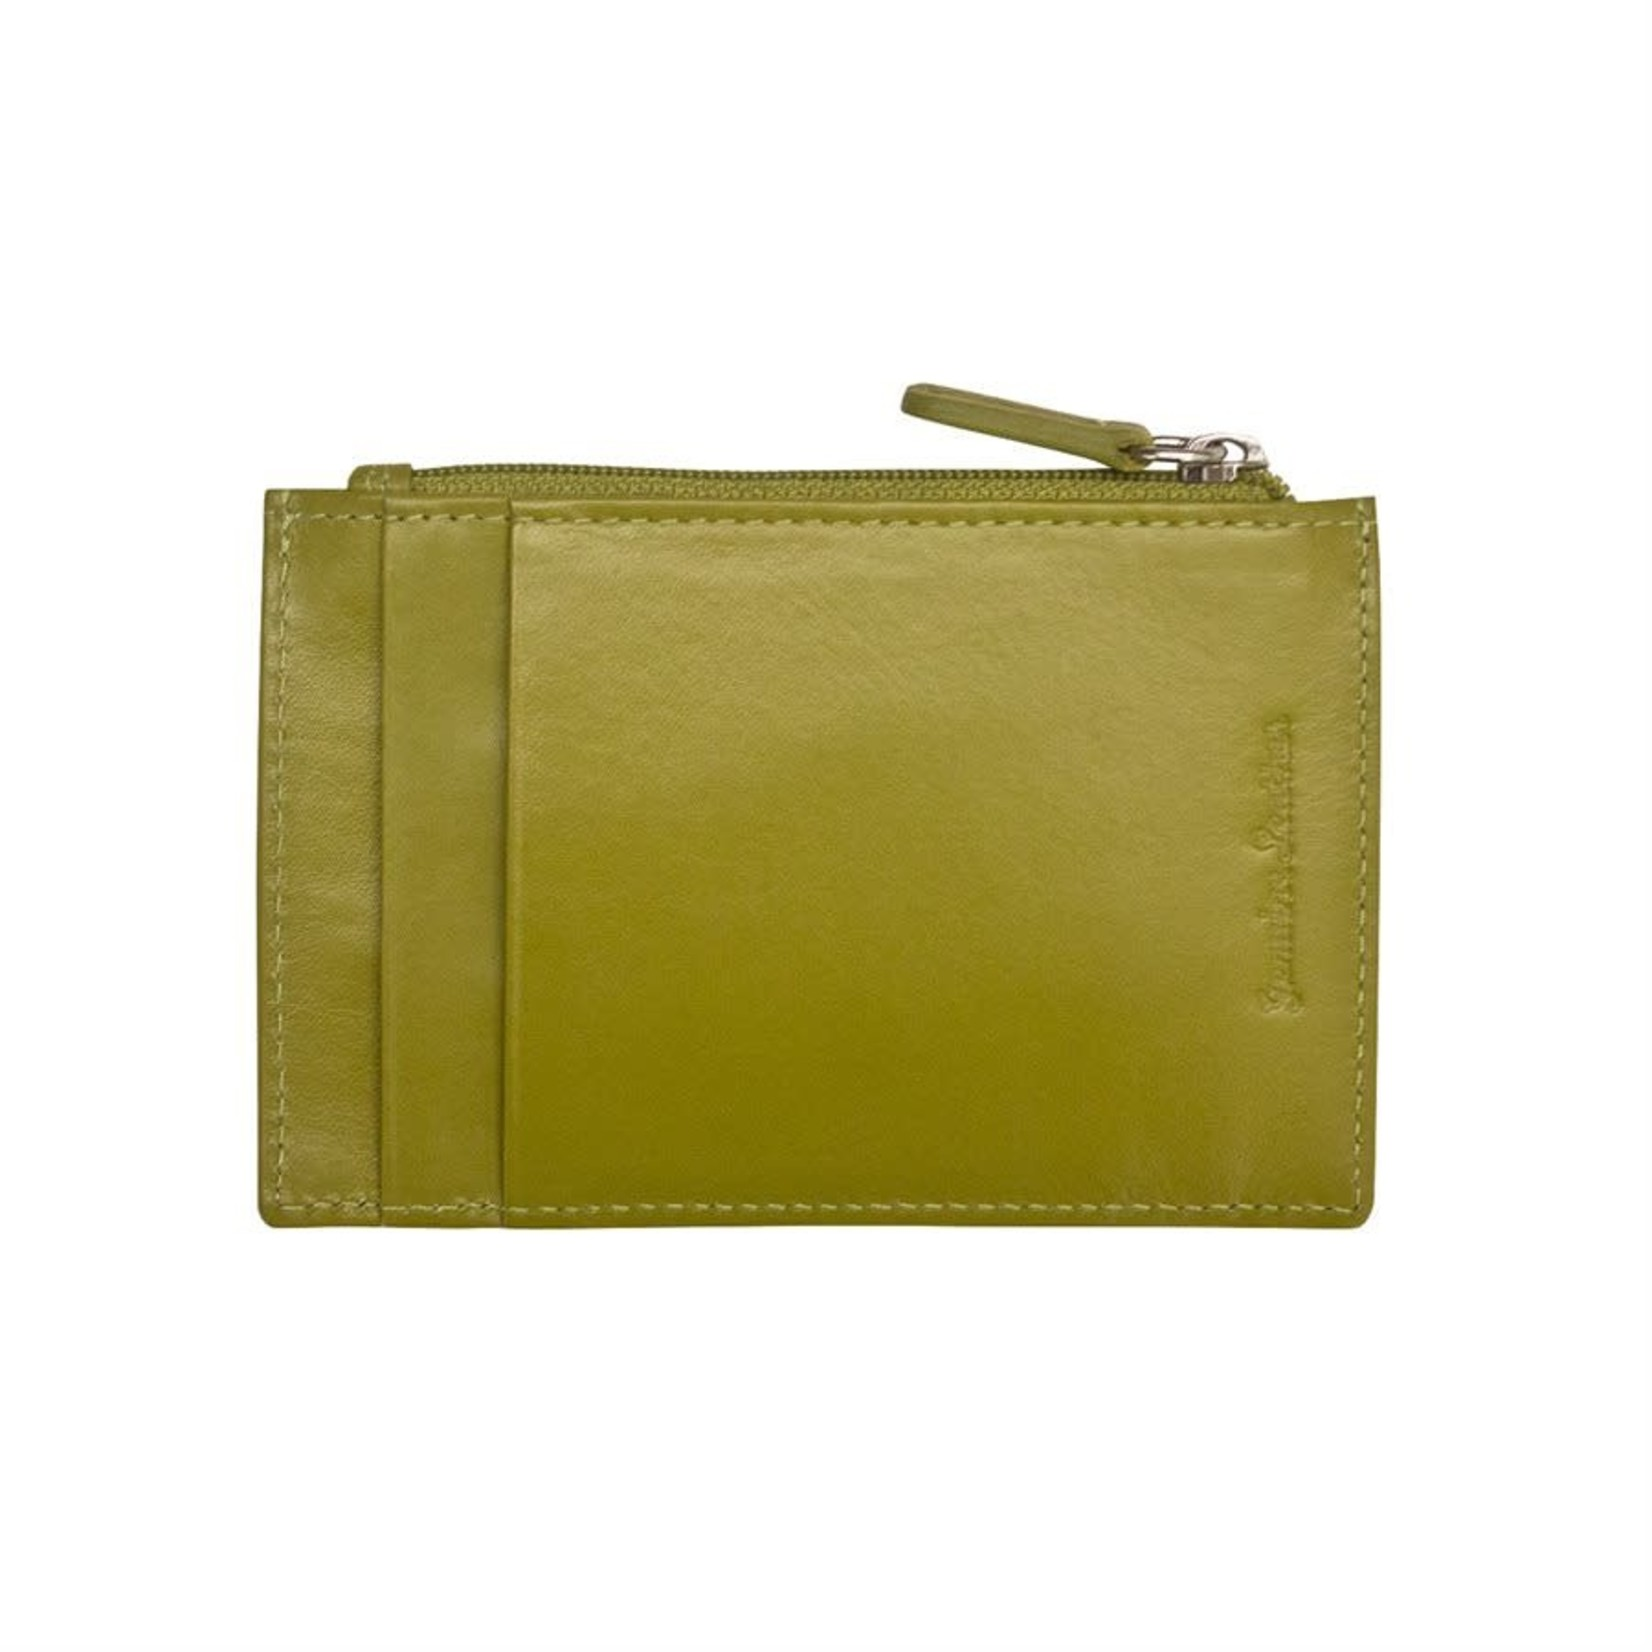 Leather Handbags and Accessories 7416 Moss Green - RFID Card Holder